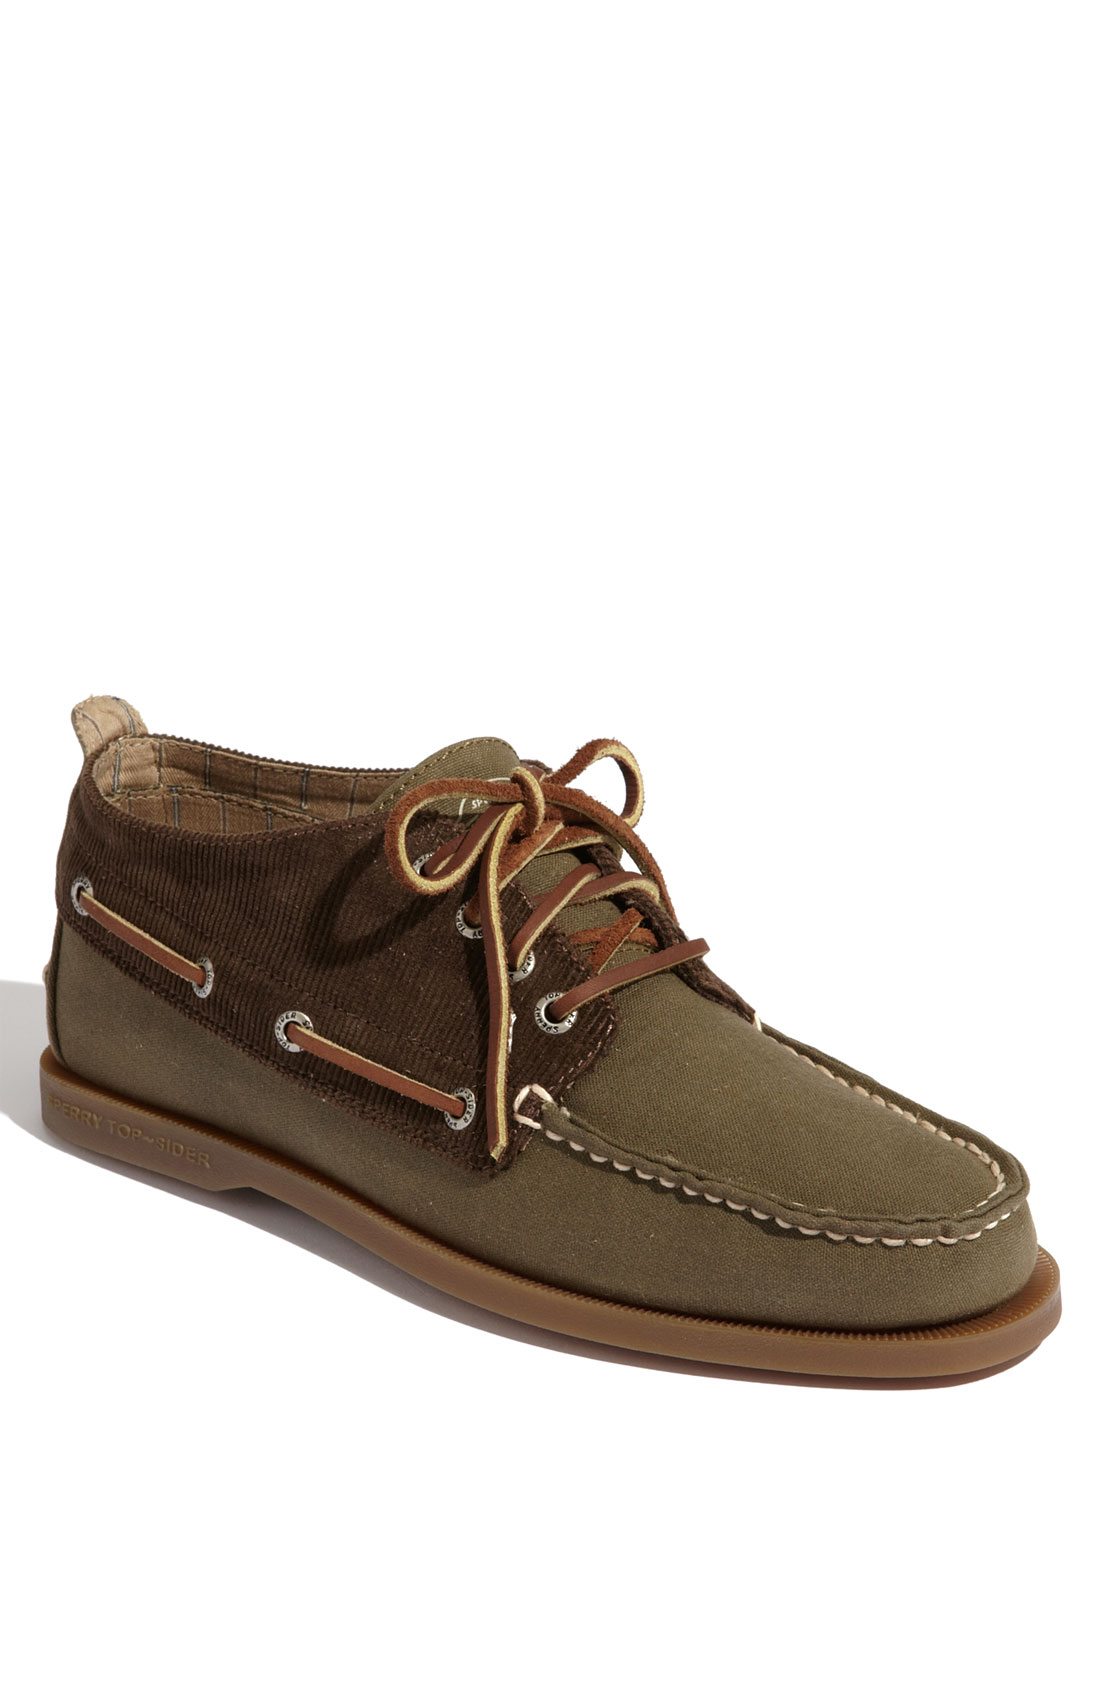 Sperry Top Sider Authentic Original Chukka Boot In Green